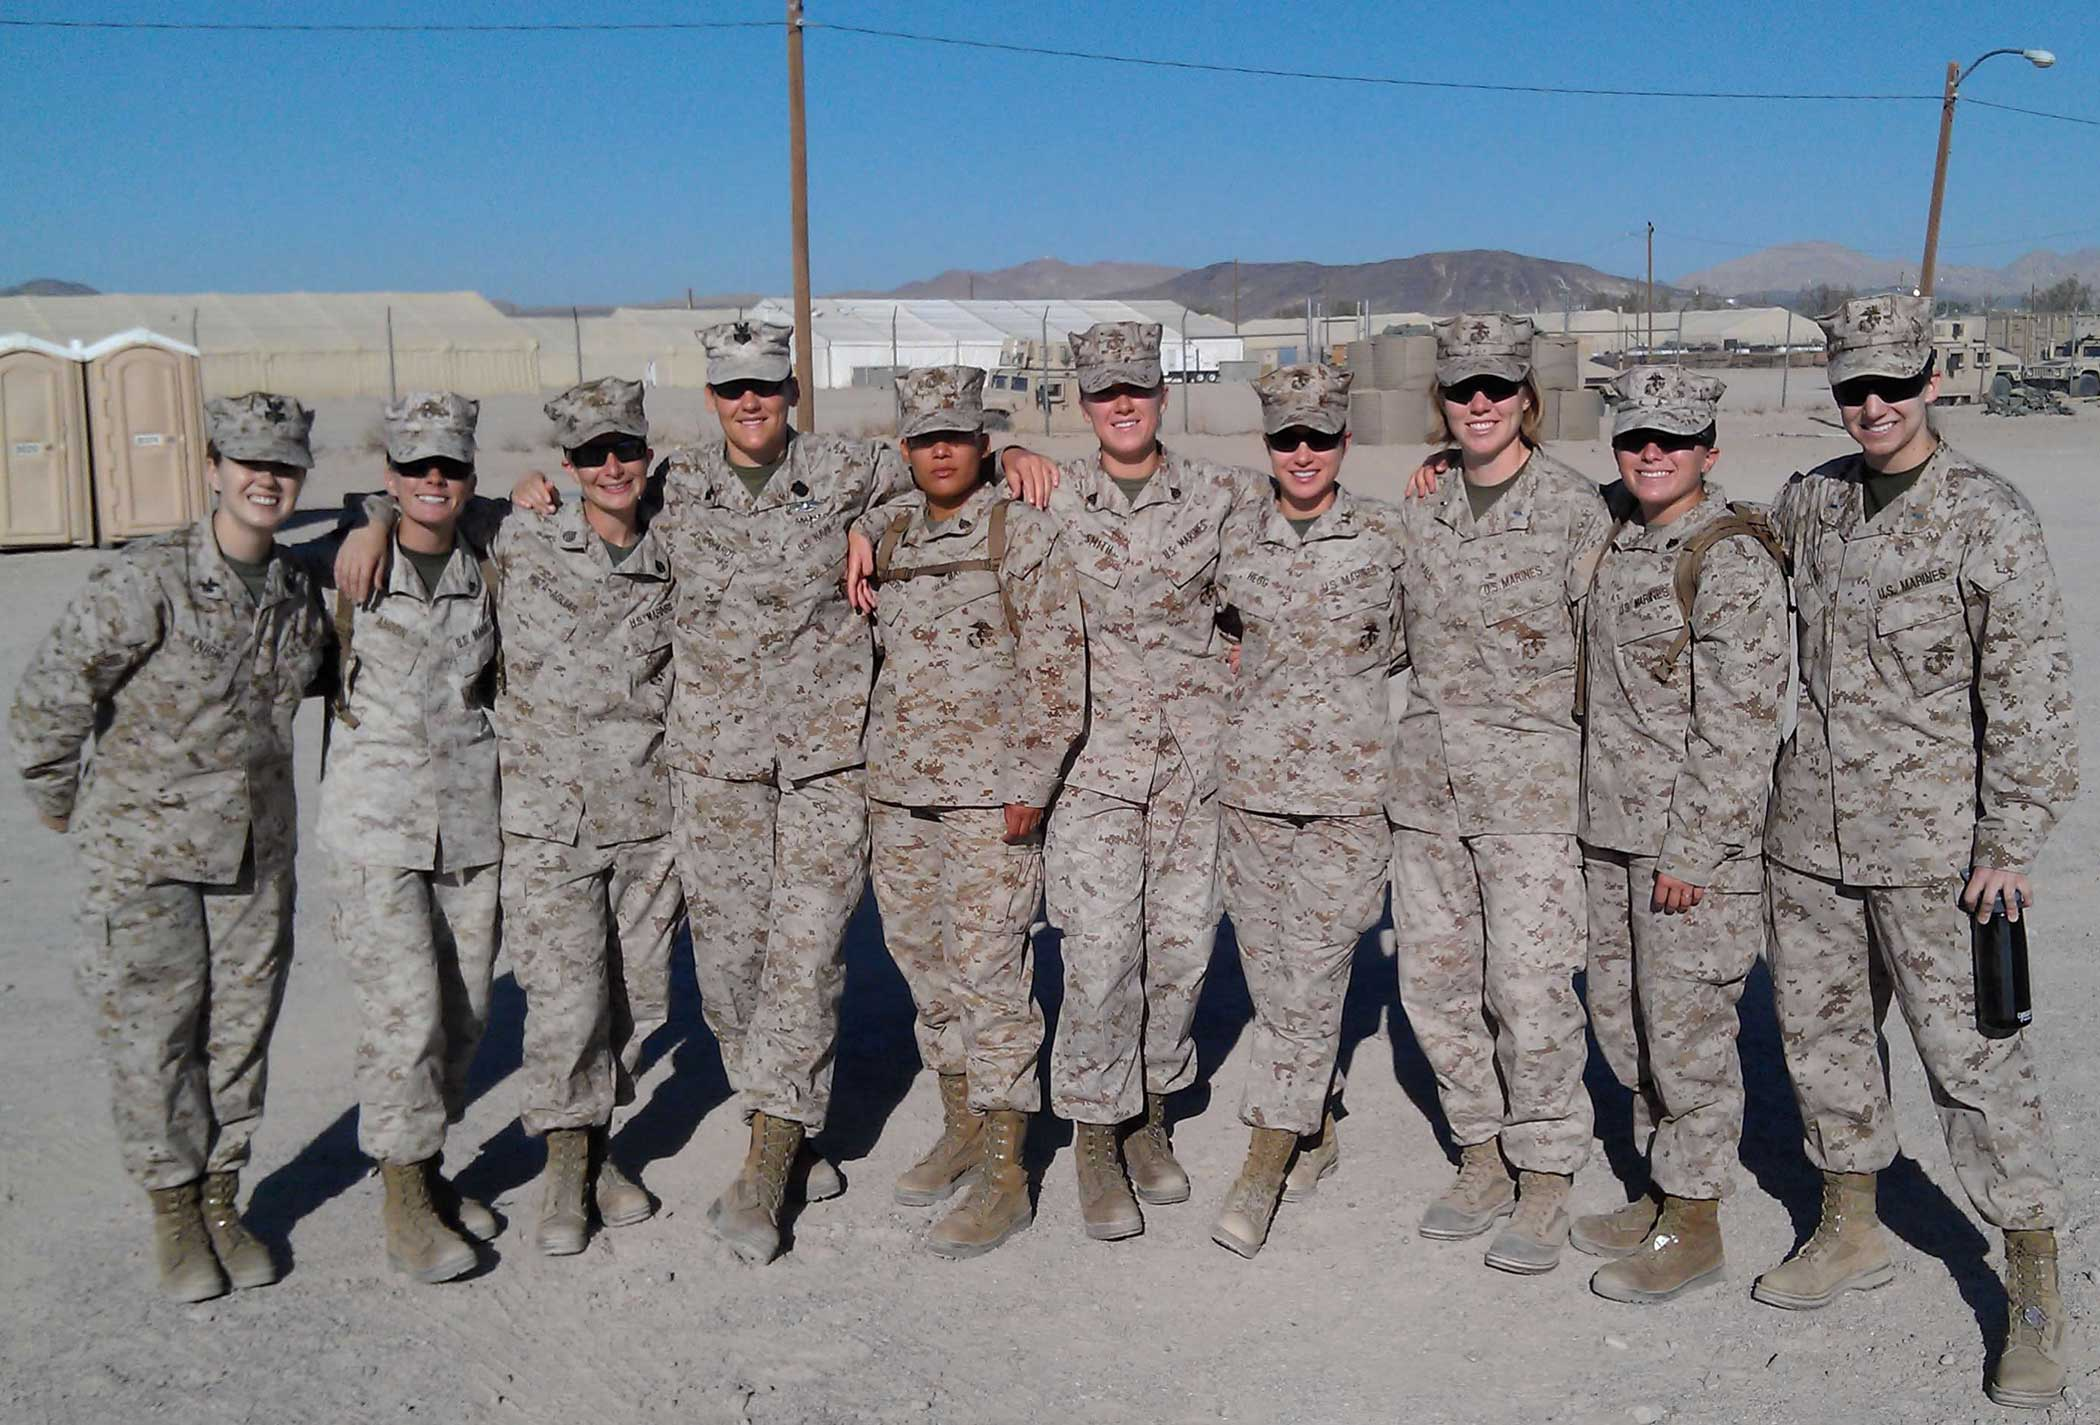 The author, far right, poses with other Marines while training in Barstow, California. To the author, it's just a group of Marines, but she wonders what others see. Photo courtesy of the author.